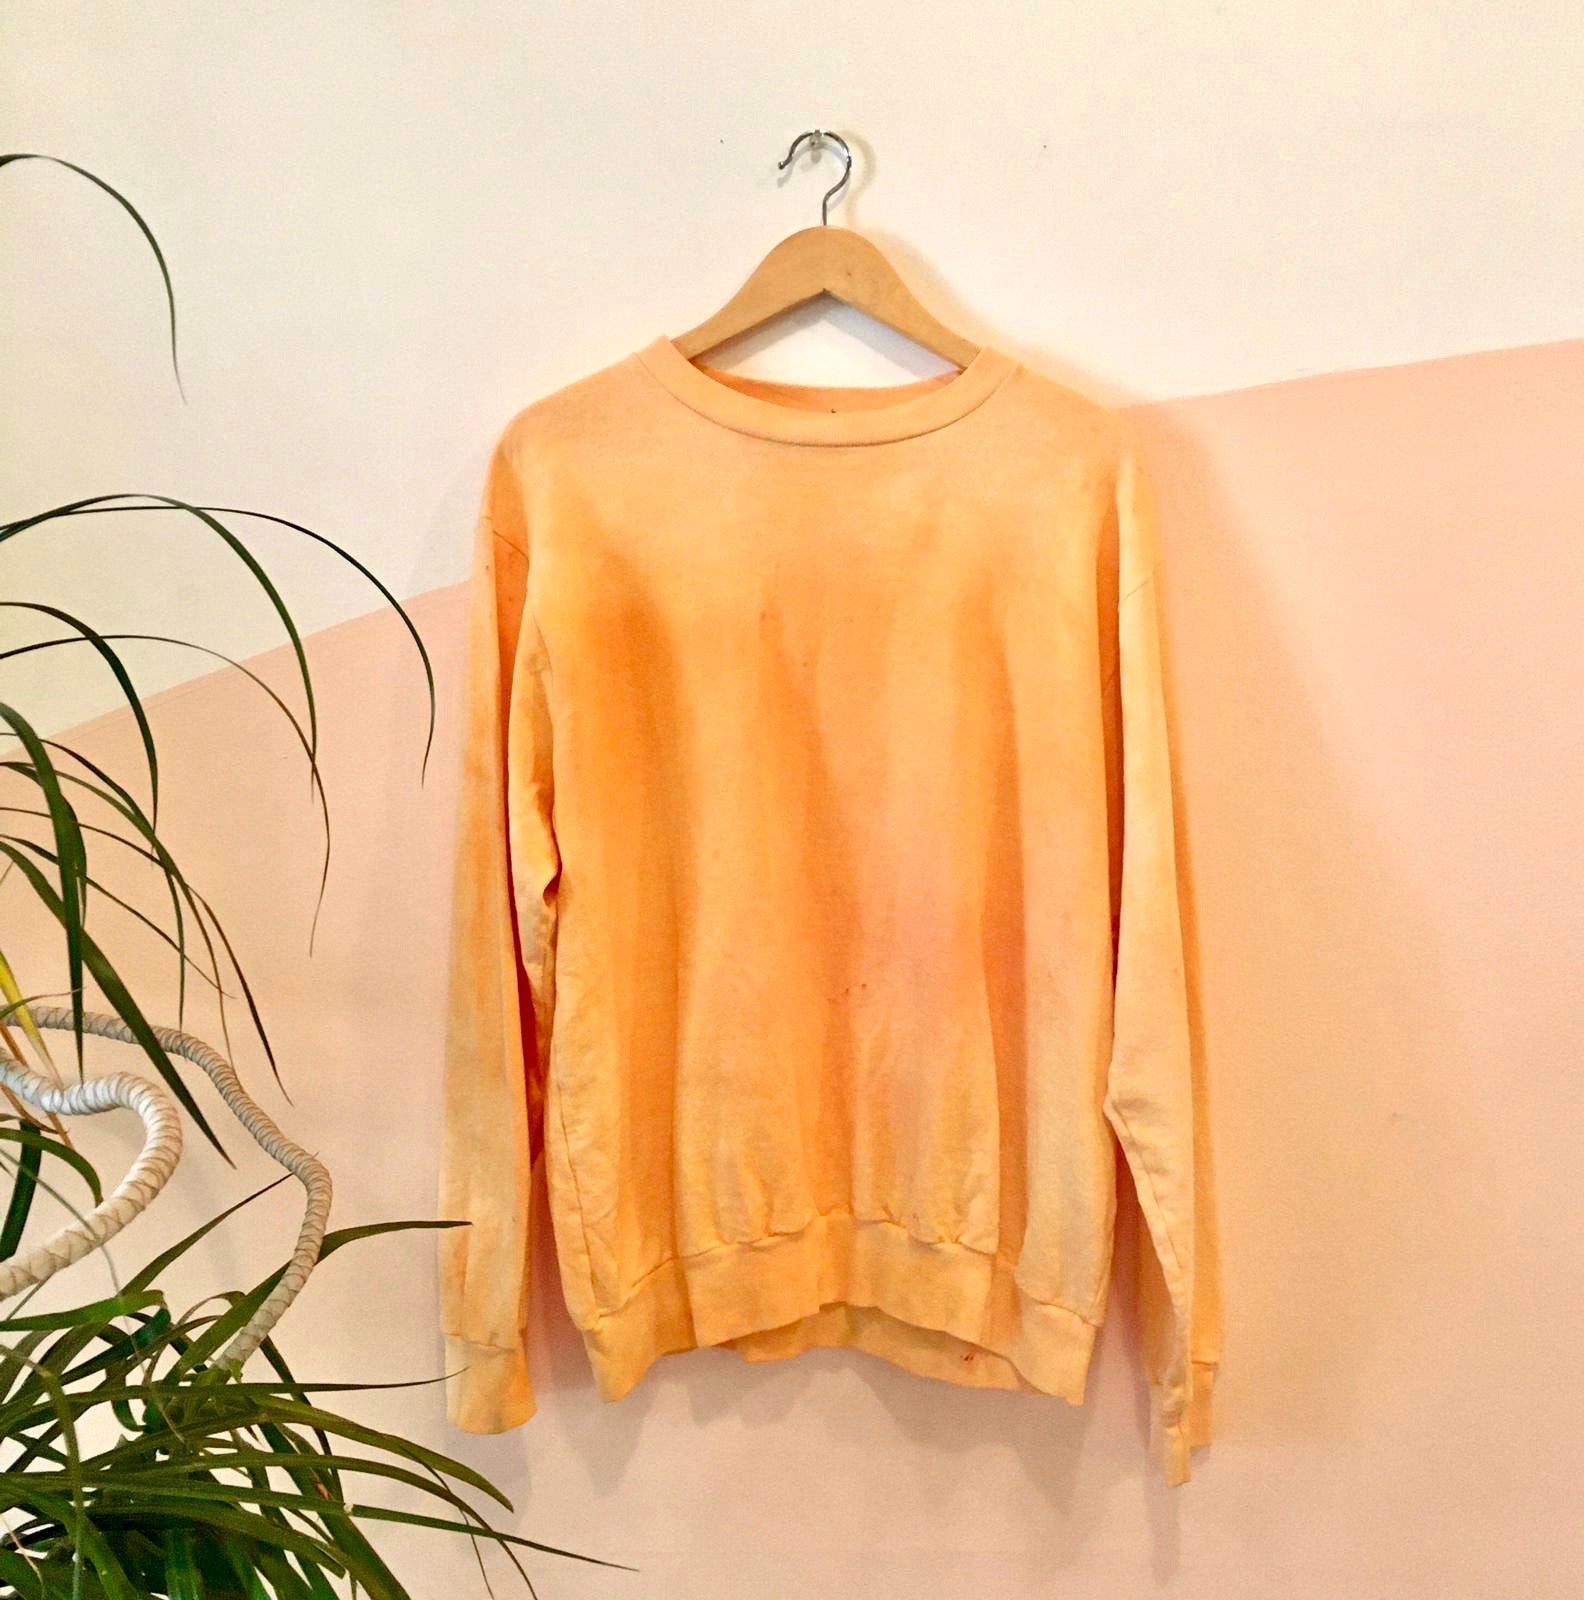 Tie-dye Crewneck Sweatshirt - Orange